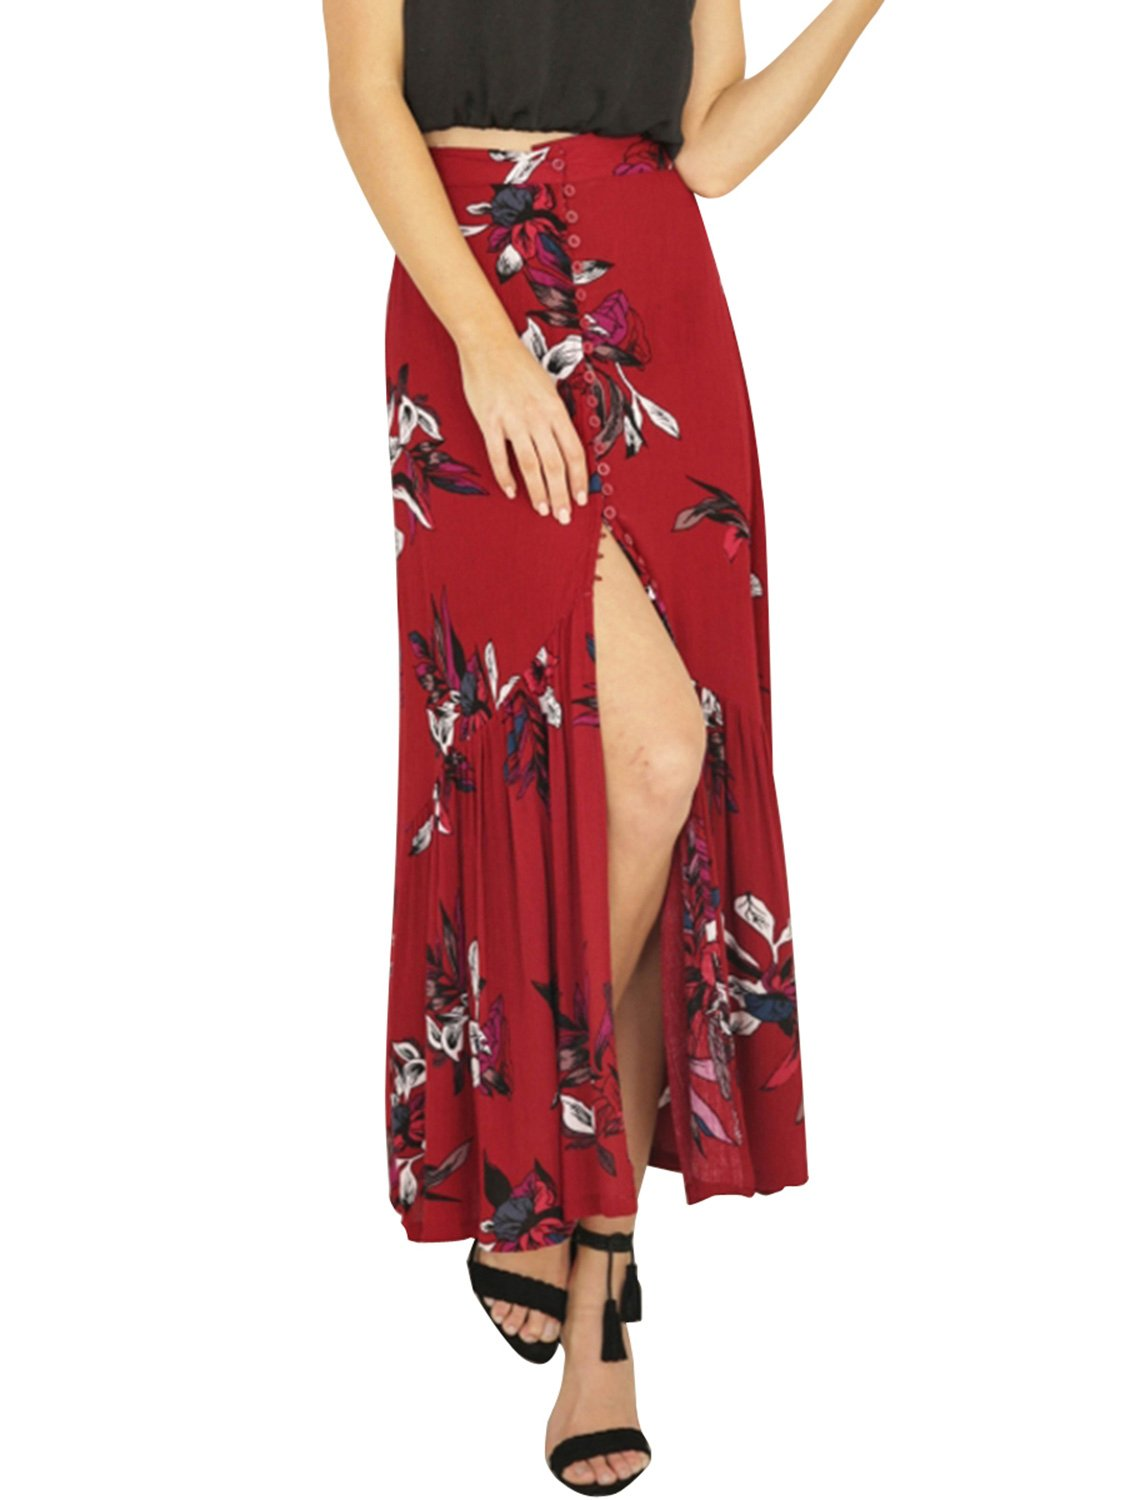 BerryGo Women's Boho Button Front Floral Print Ruffle Maxi Party Skirt Red,M